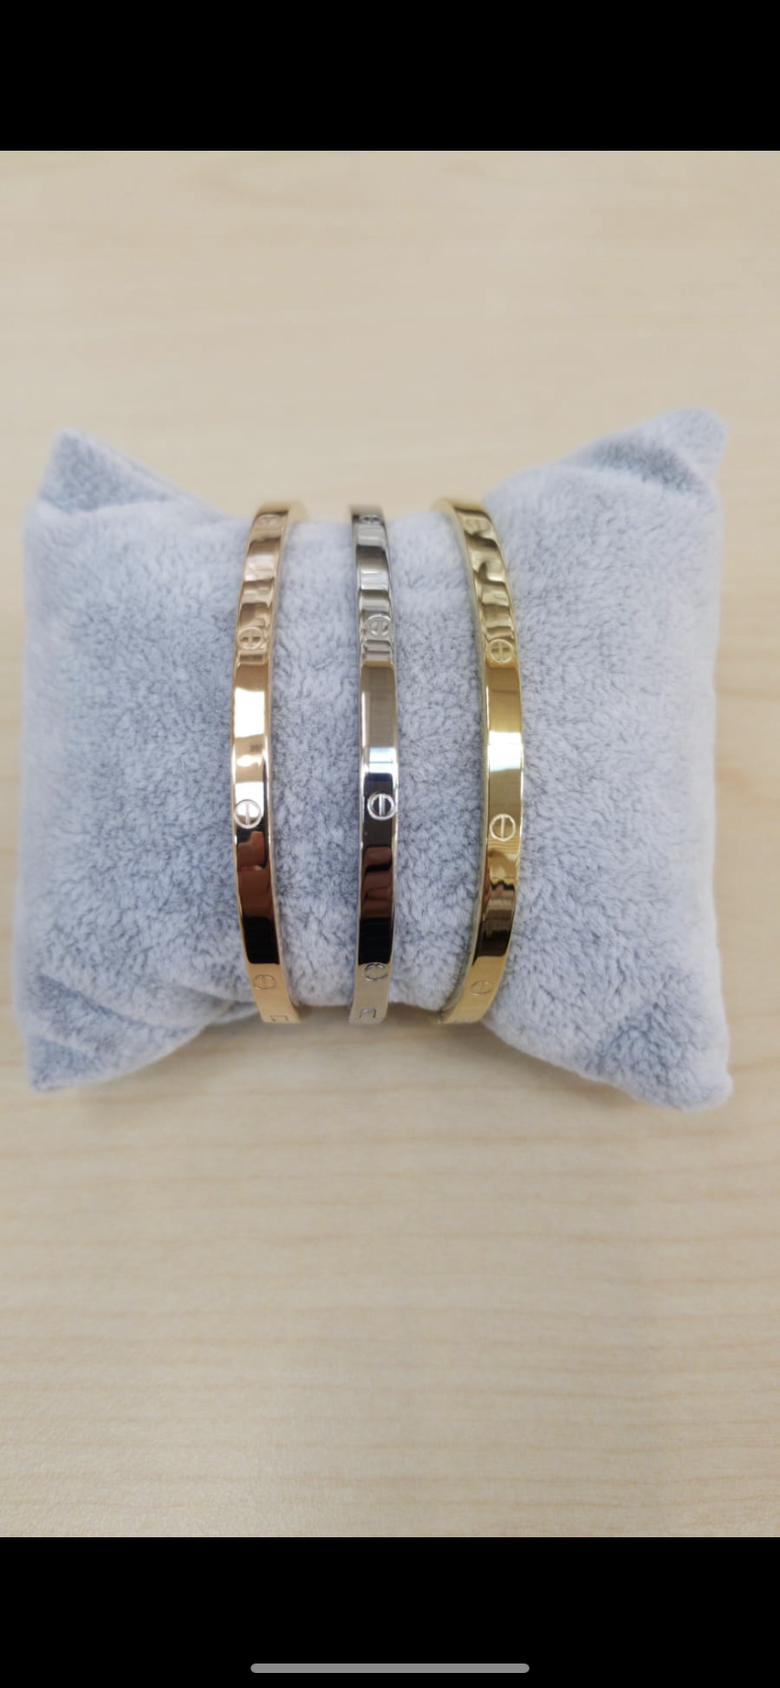 Image of mini CL bracelets (comes with all three colors)